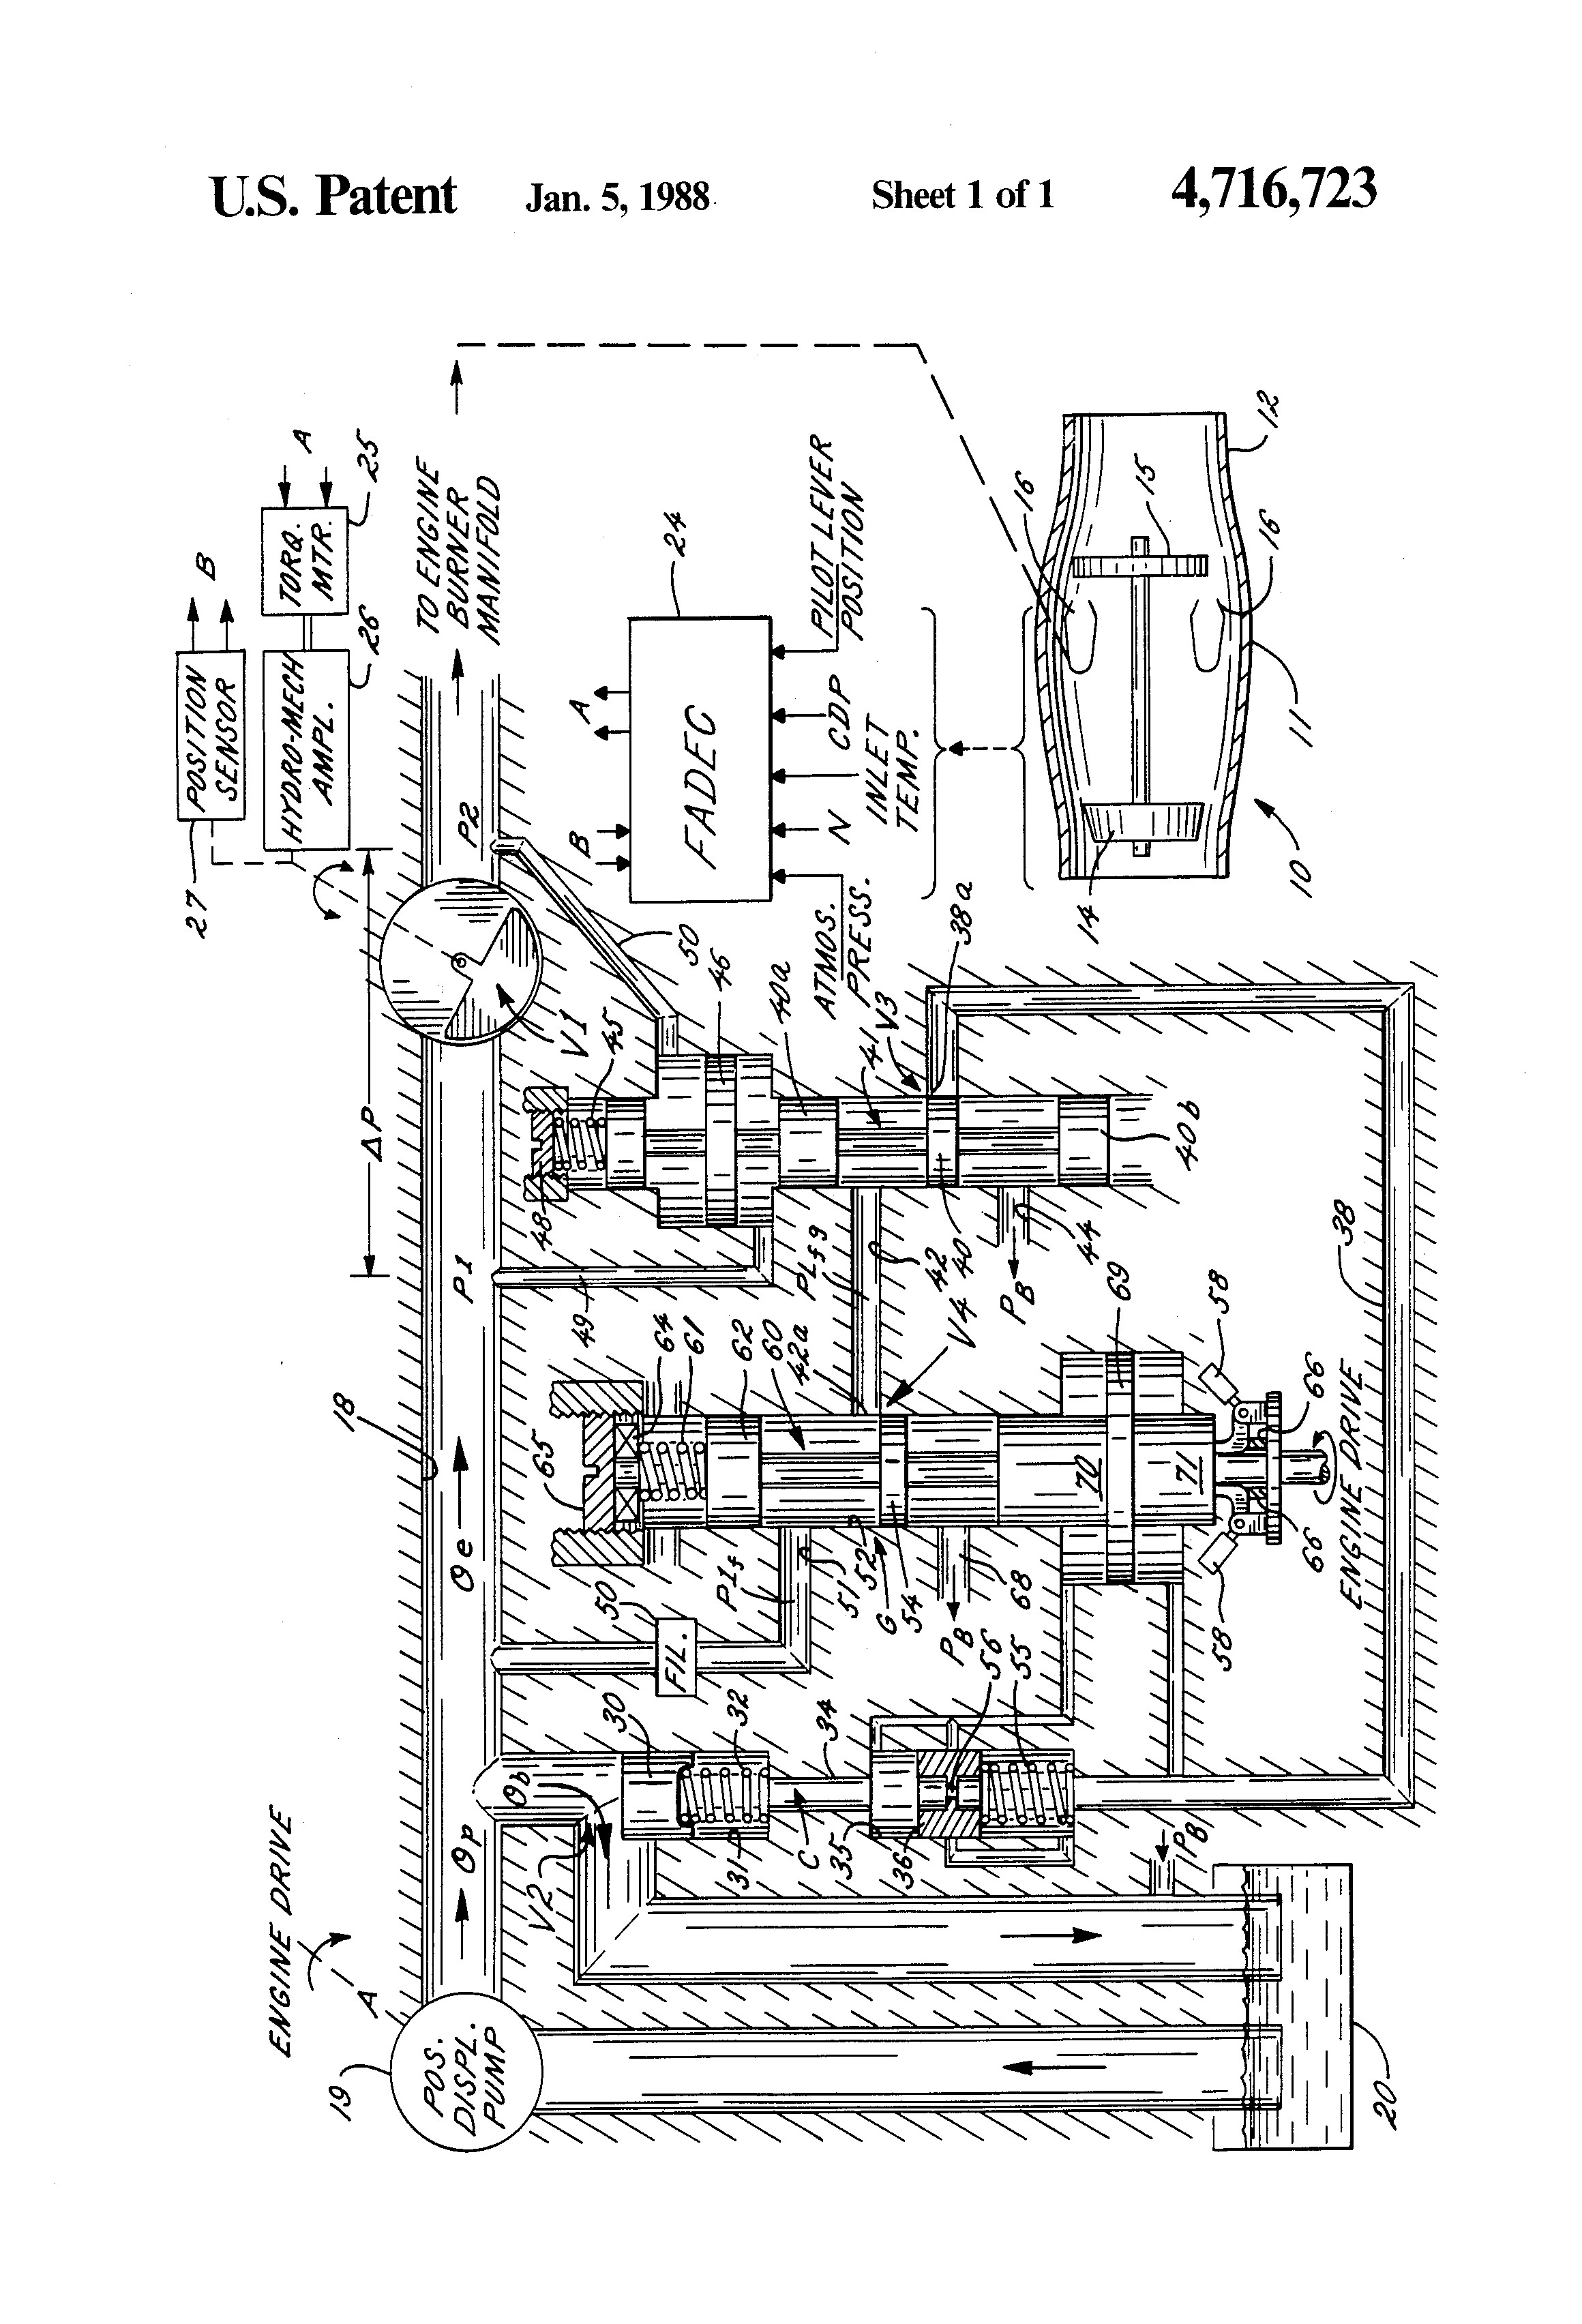 Turbine Engine Diagram Patent Us Fuel Controls for Gas Turbine Engines Google